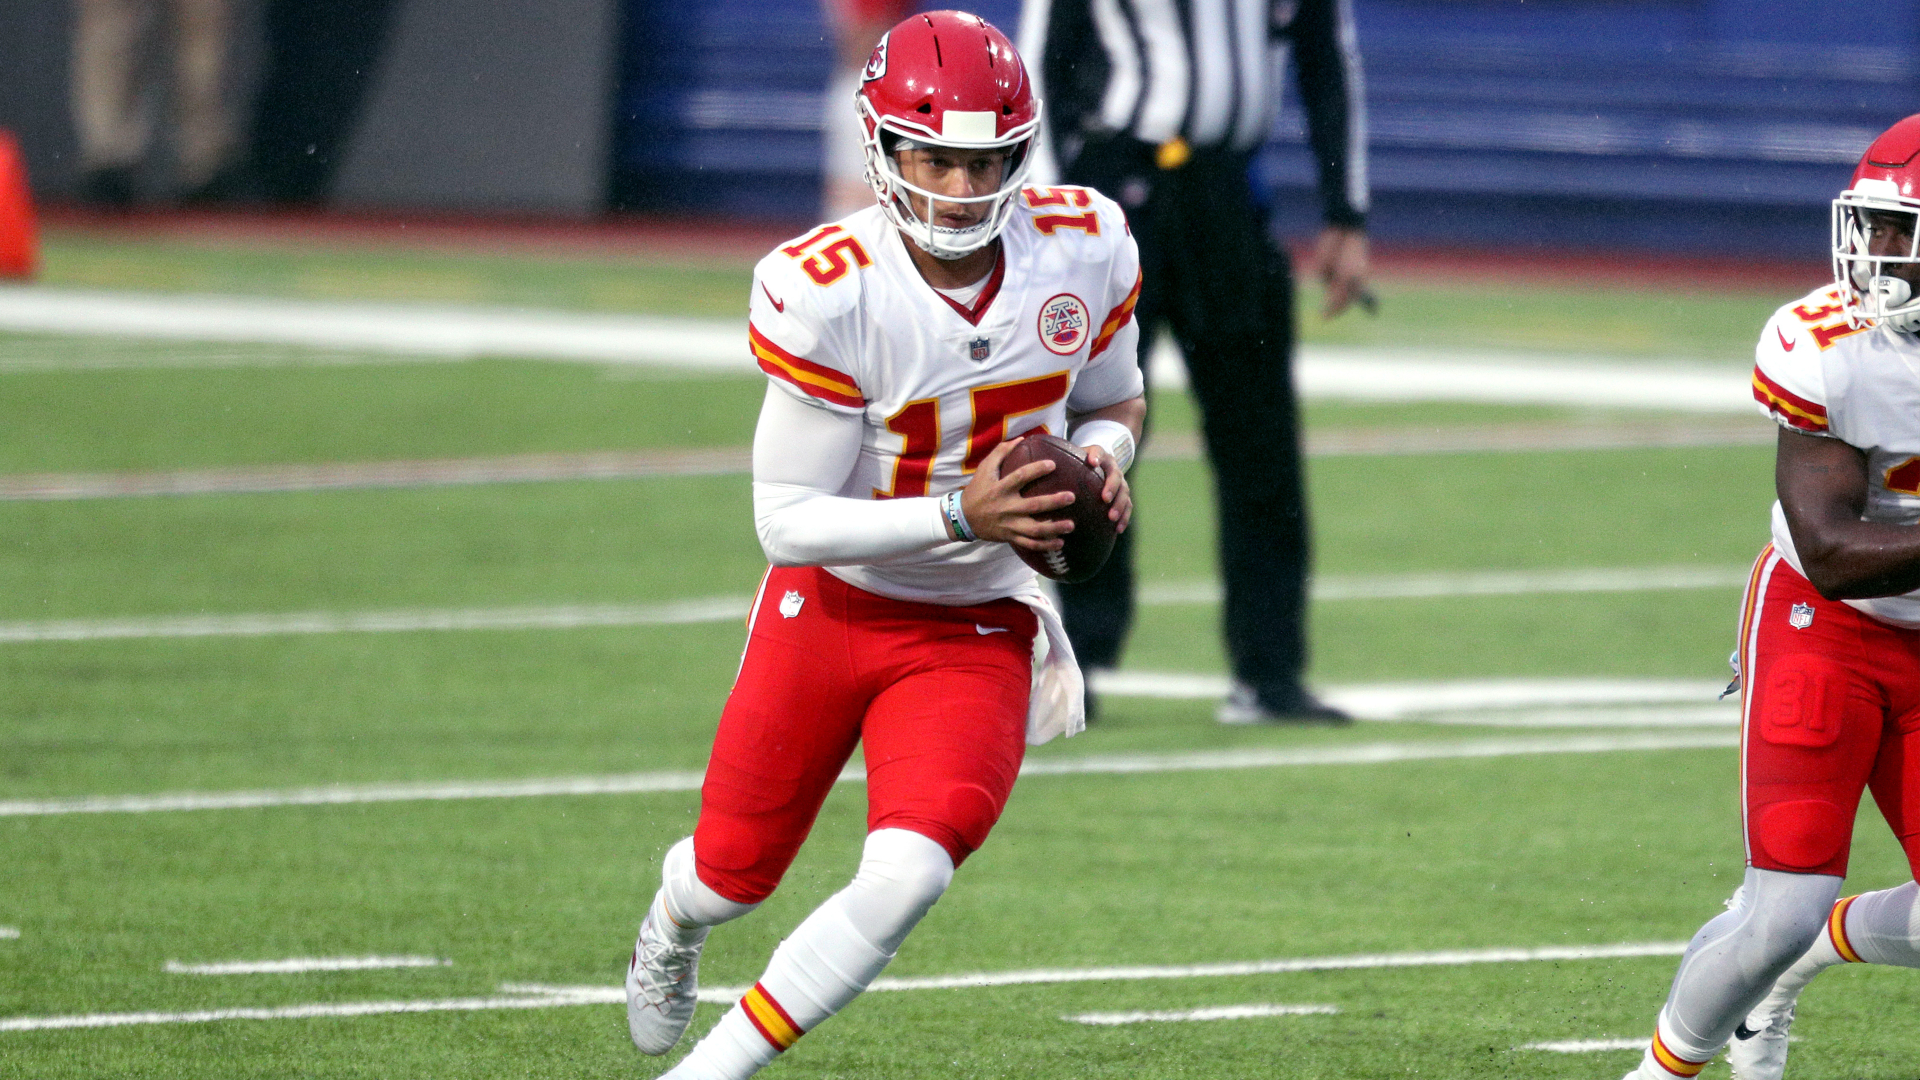 Patrick Mahomes is happy for the Kansas City Chiefs to take whatever approach is going to help them win.